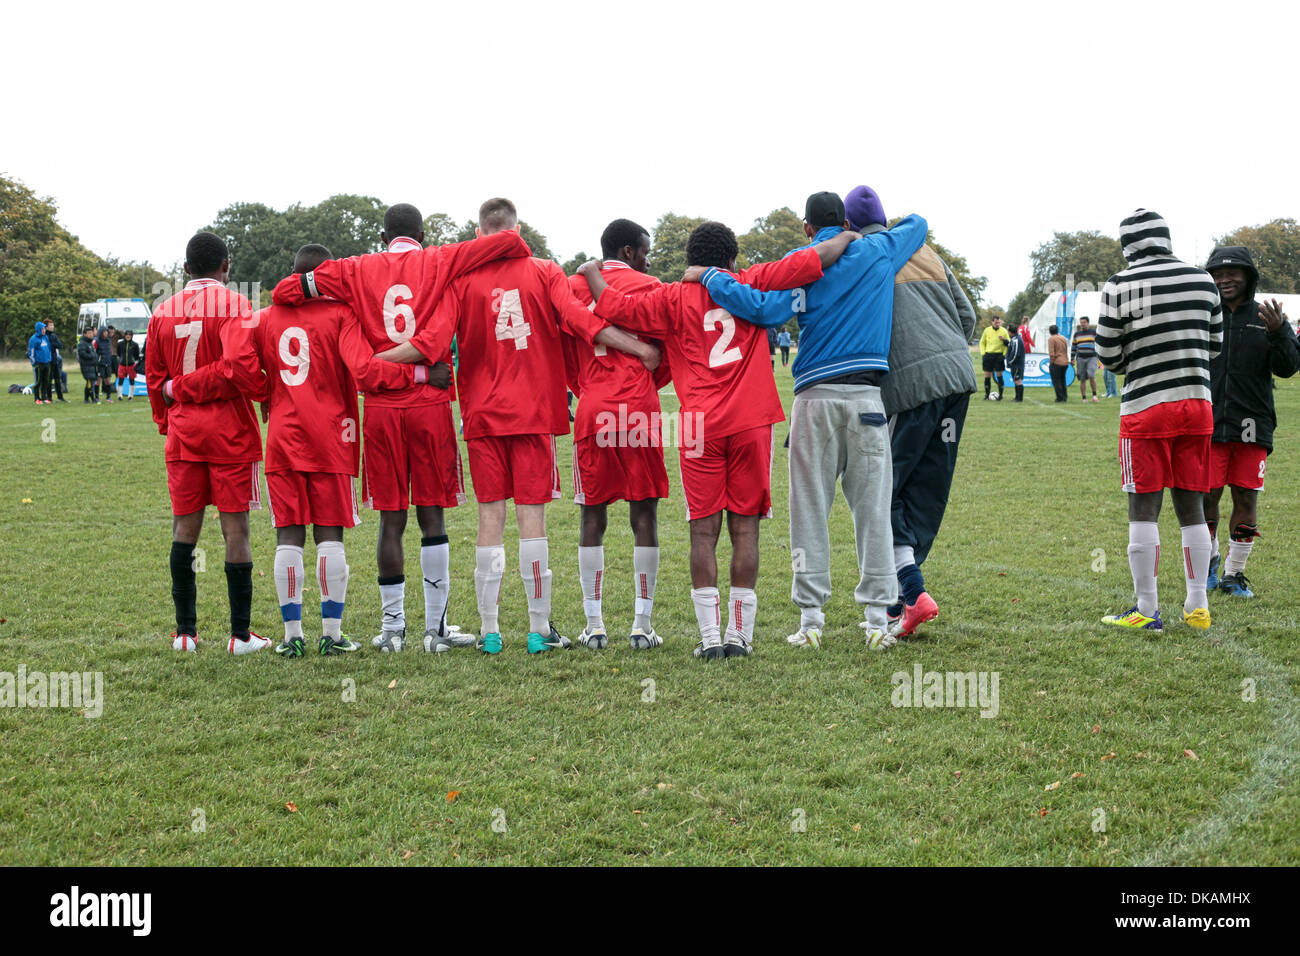 Football team huddle together during penalty shoot out. Playing football. - Stock Image